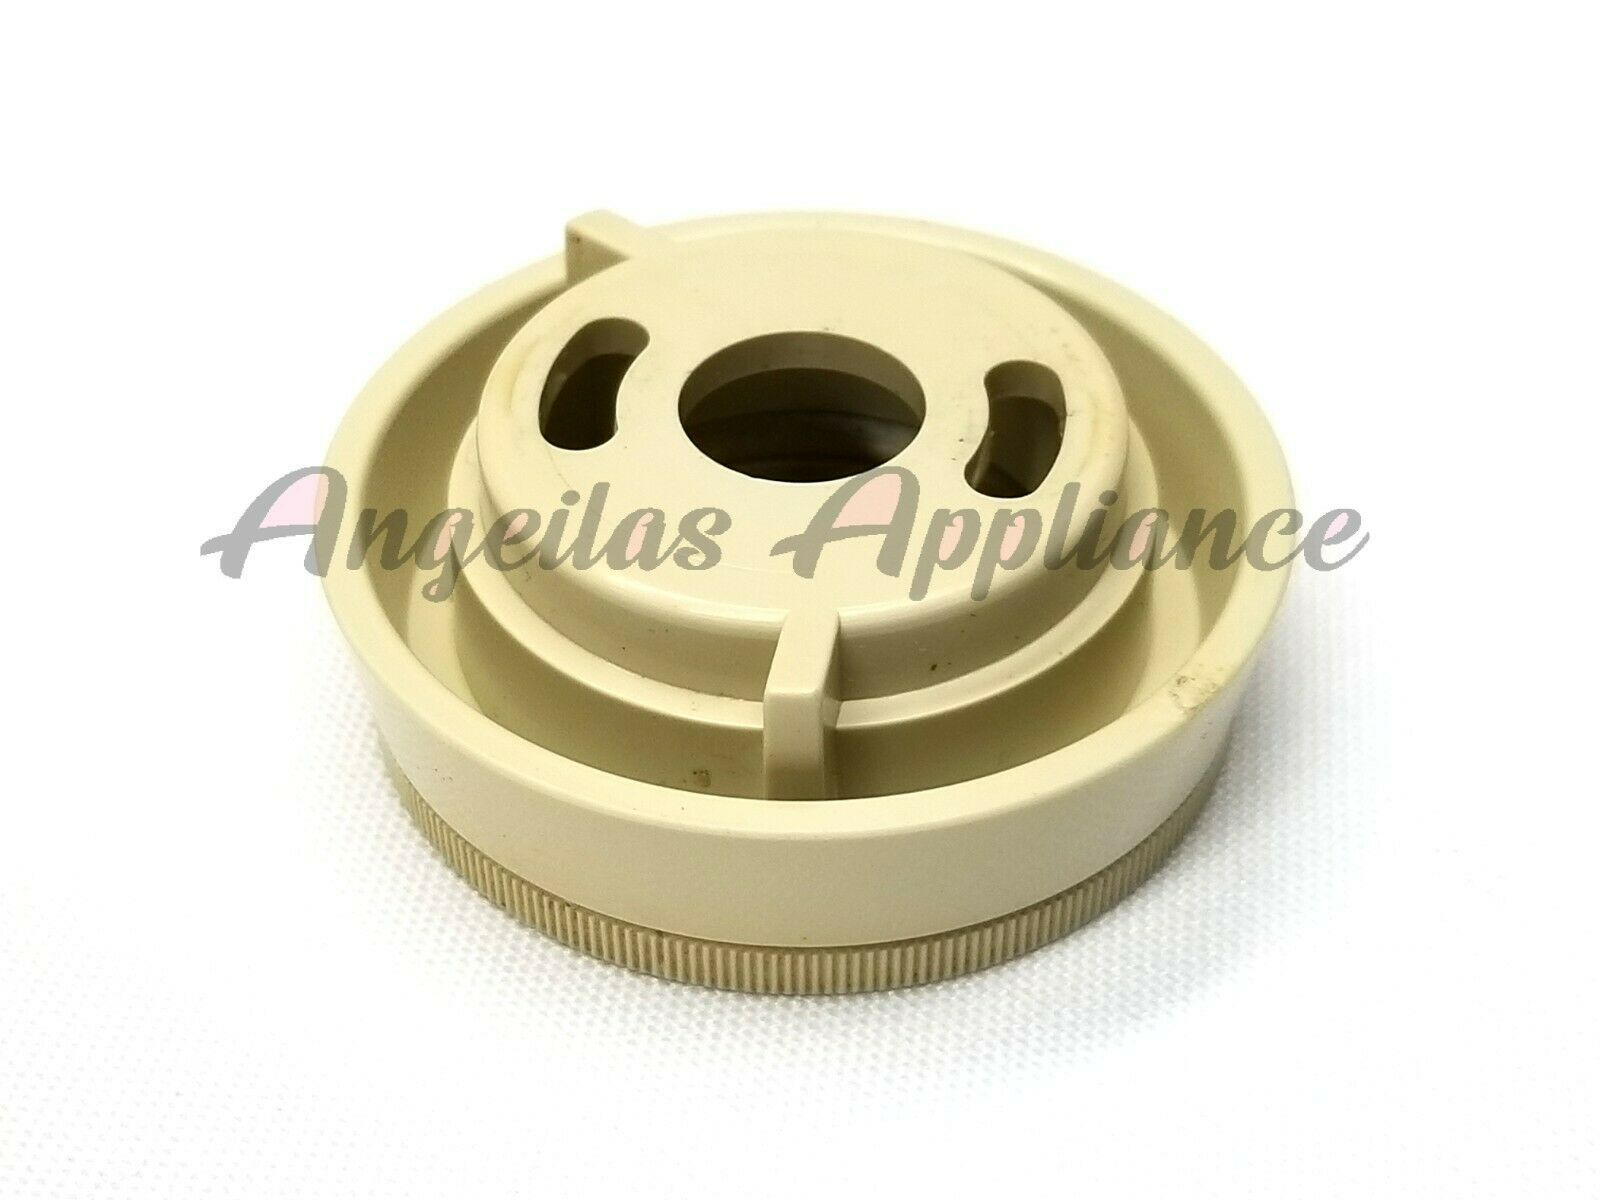 Kenmore Sewing Machine 158.13360 Stitch Length & Stitch Selection Knobs 2 Pieces - $11.41